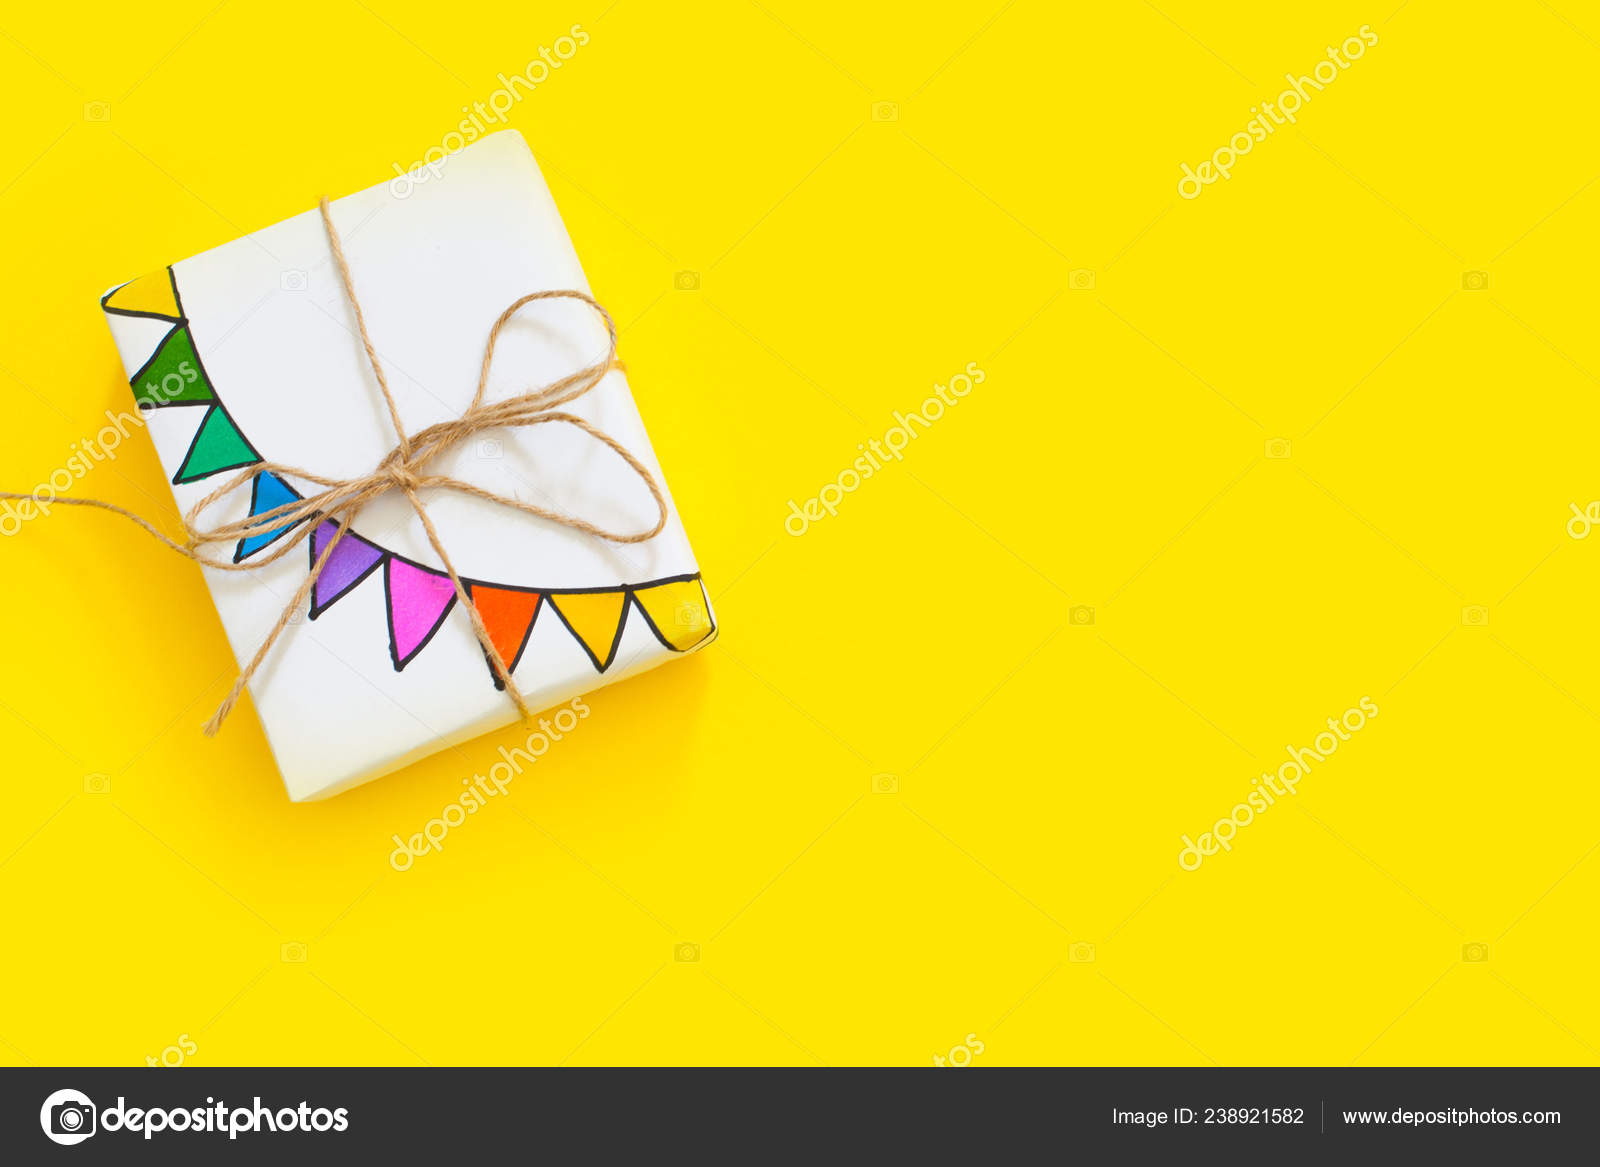 Colored Gift Boxes Jute Rope Yellow Background Gifts Party